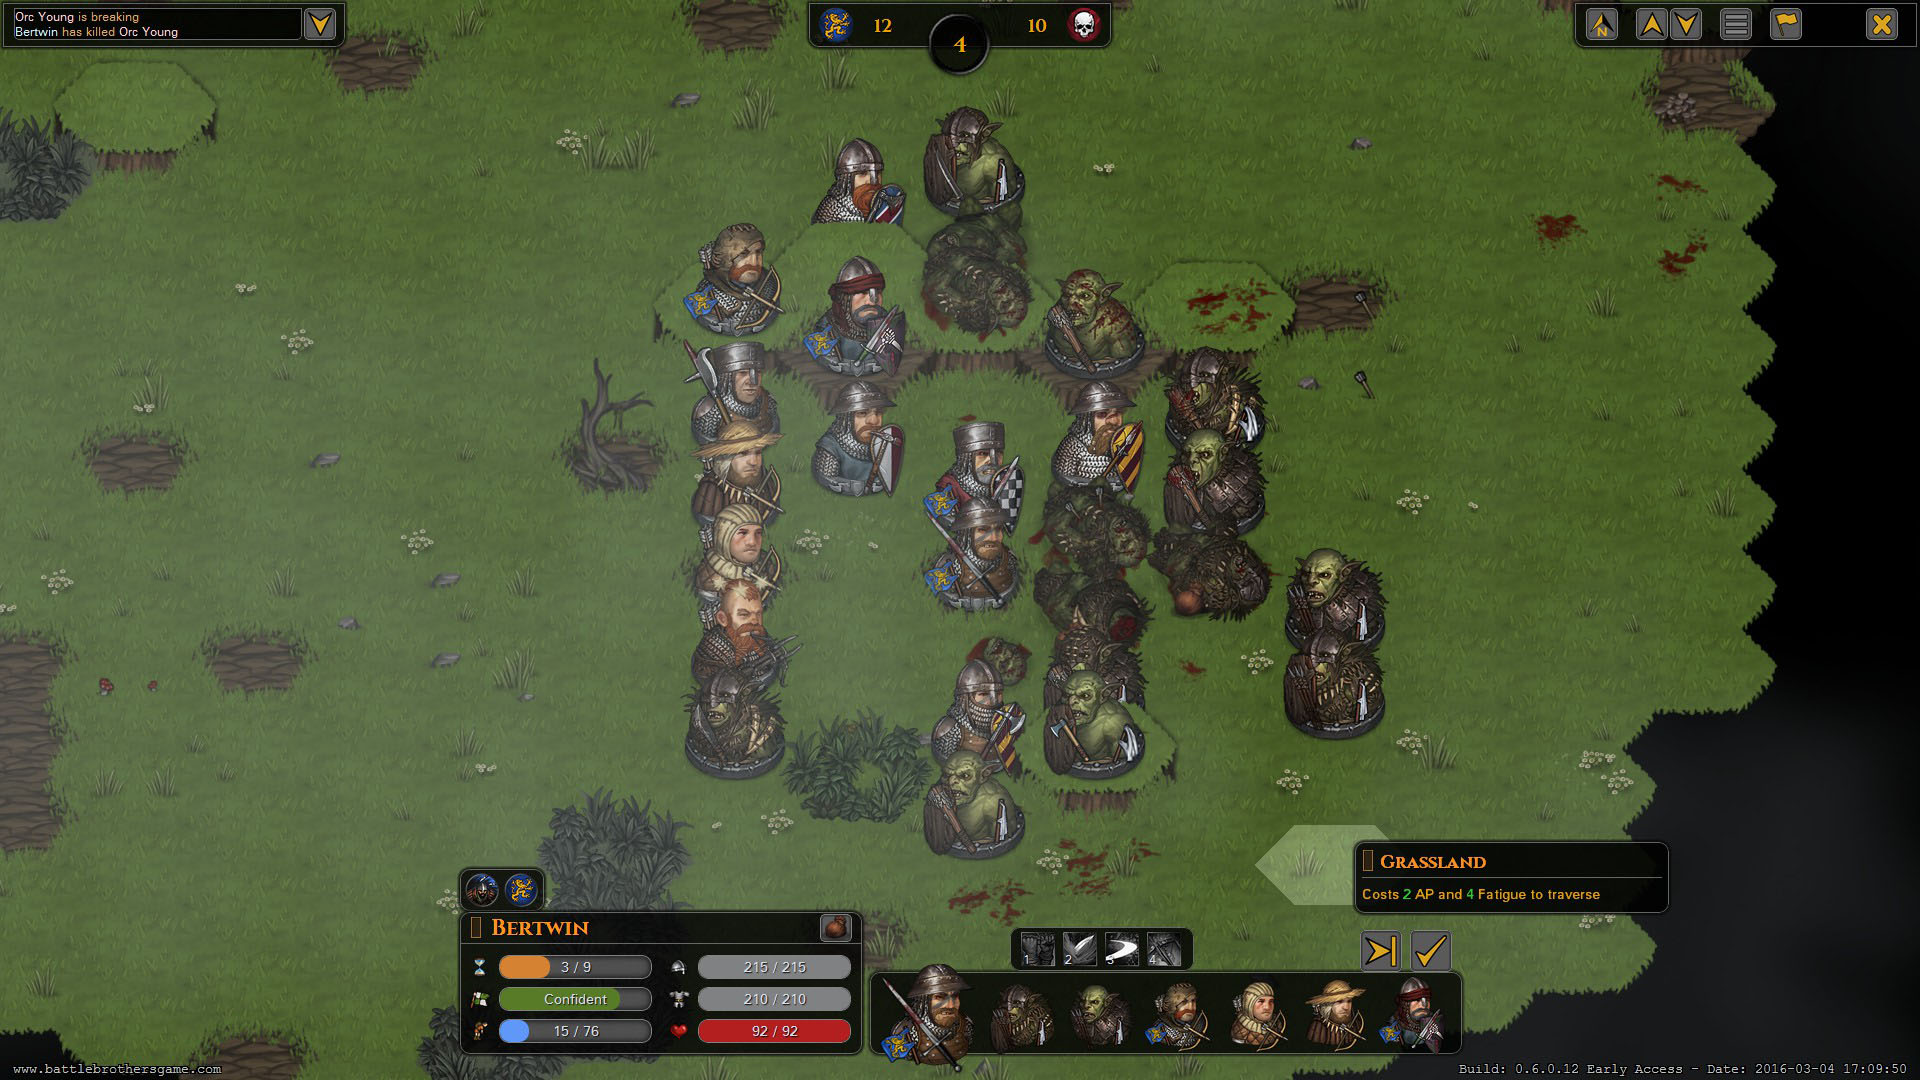 igra-battle-brothers-obzor-screenshot-3